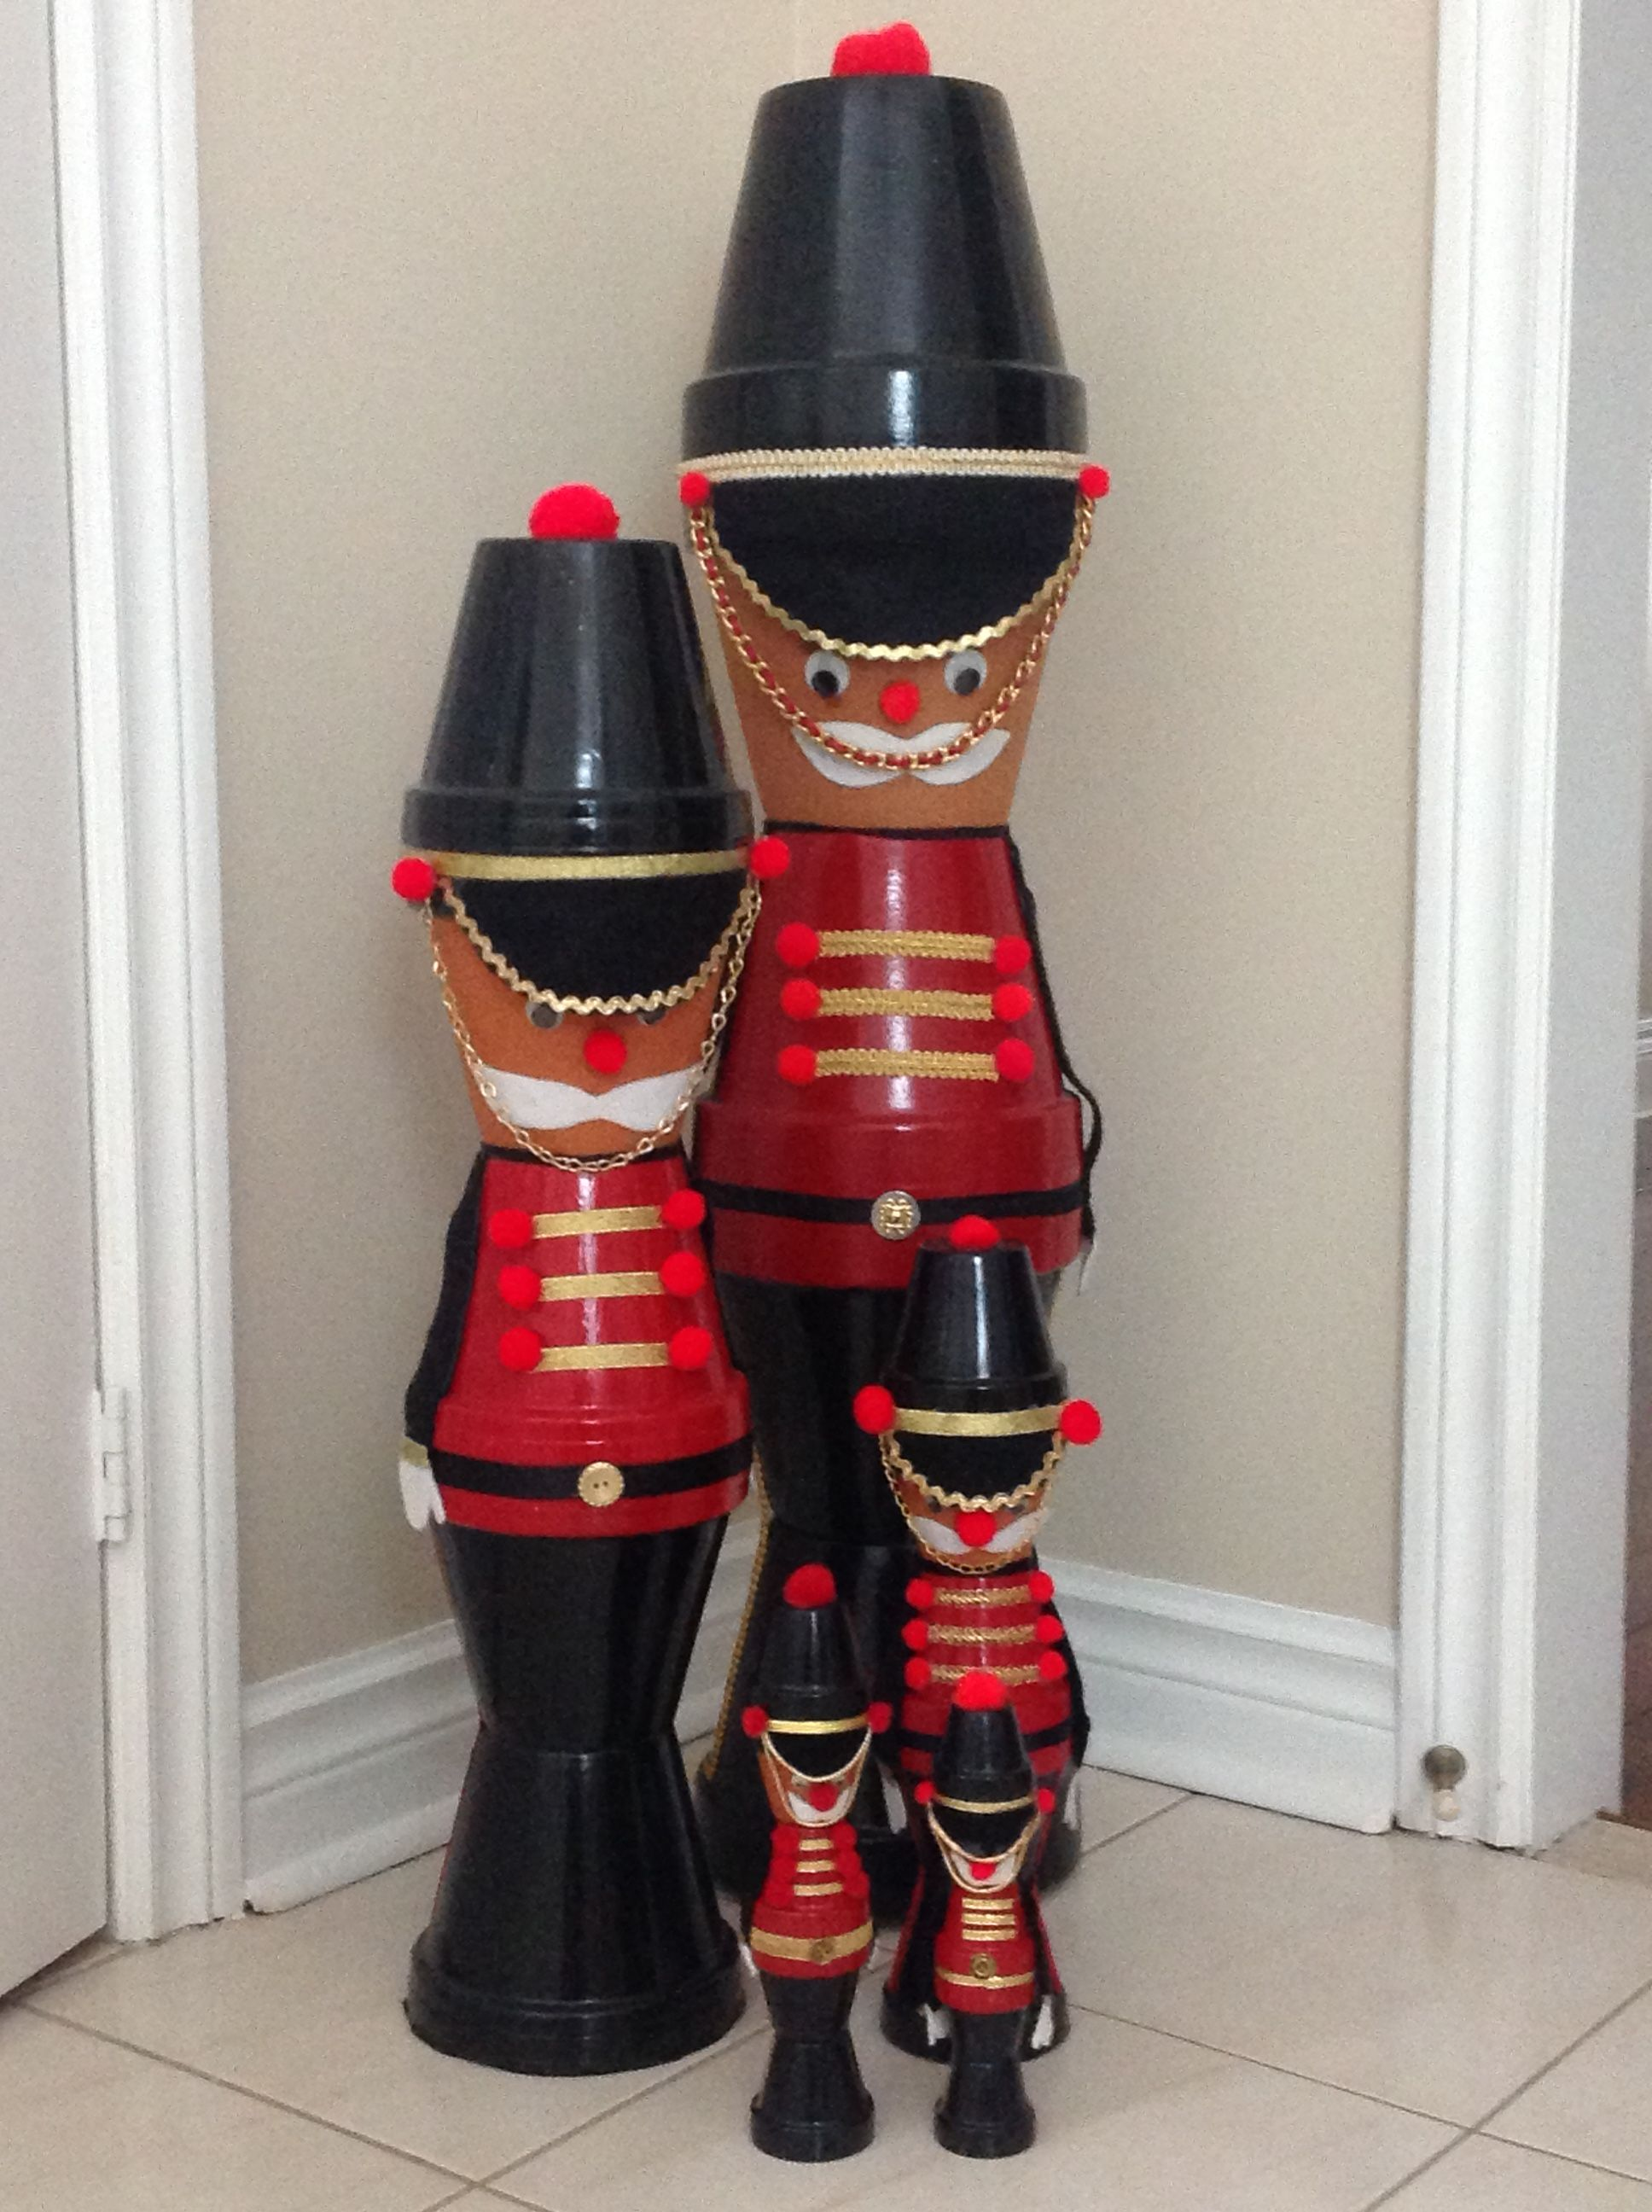 Nutcracker soldiers made from clay flower pots, they come